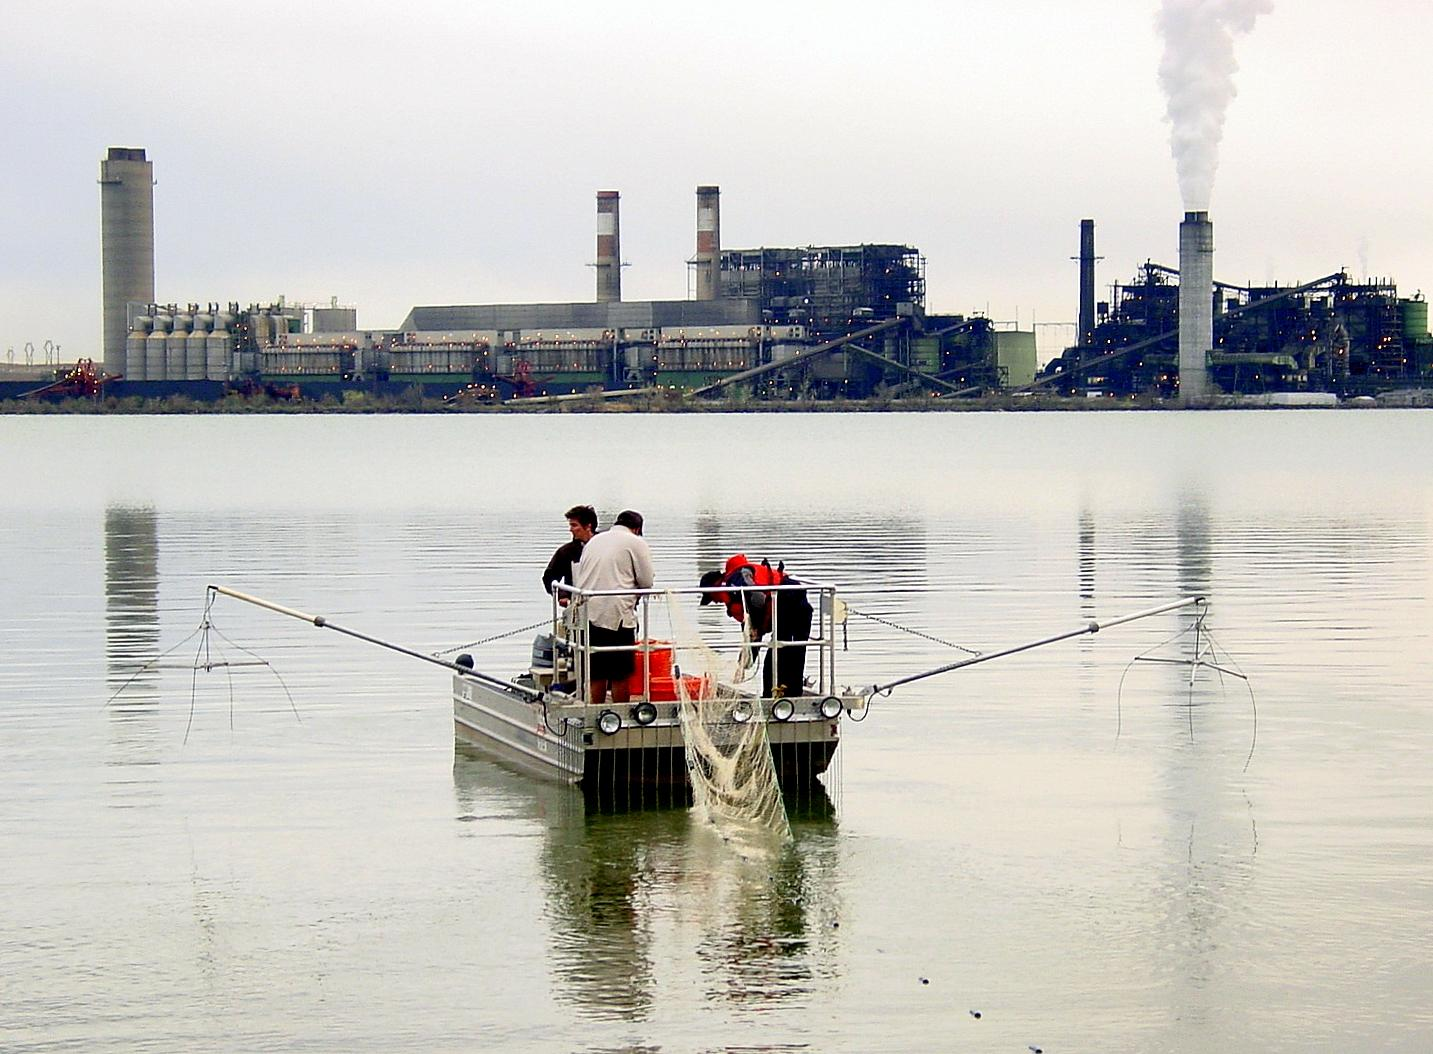 Three people on a small boat in a lake next to a power plant.